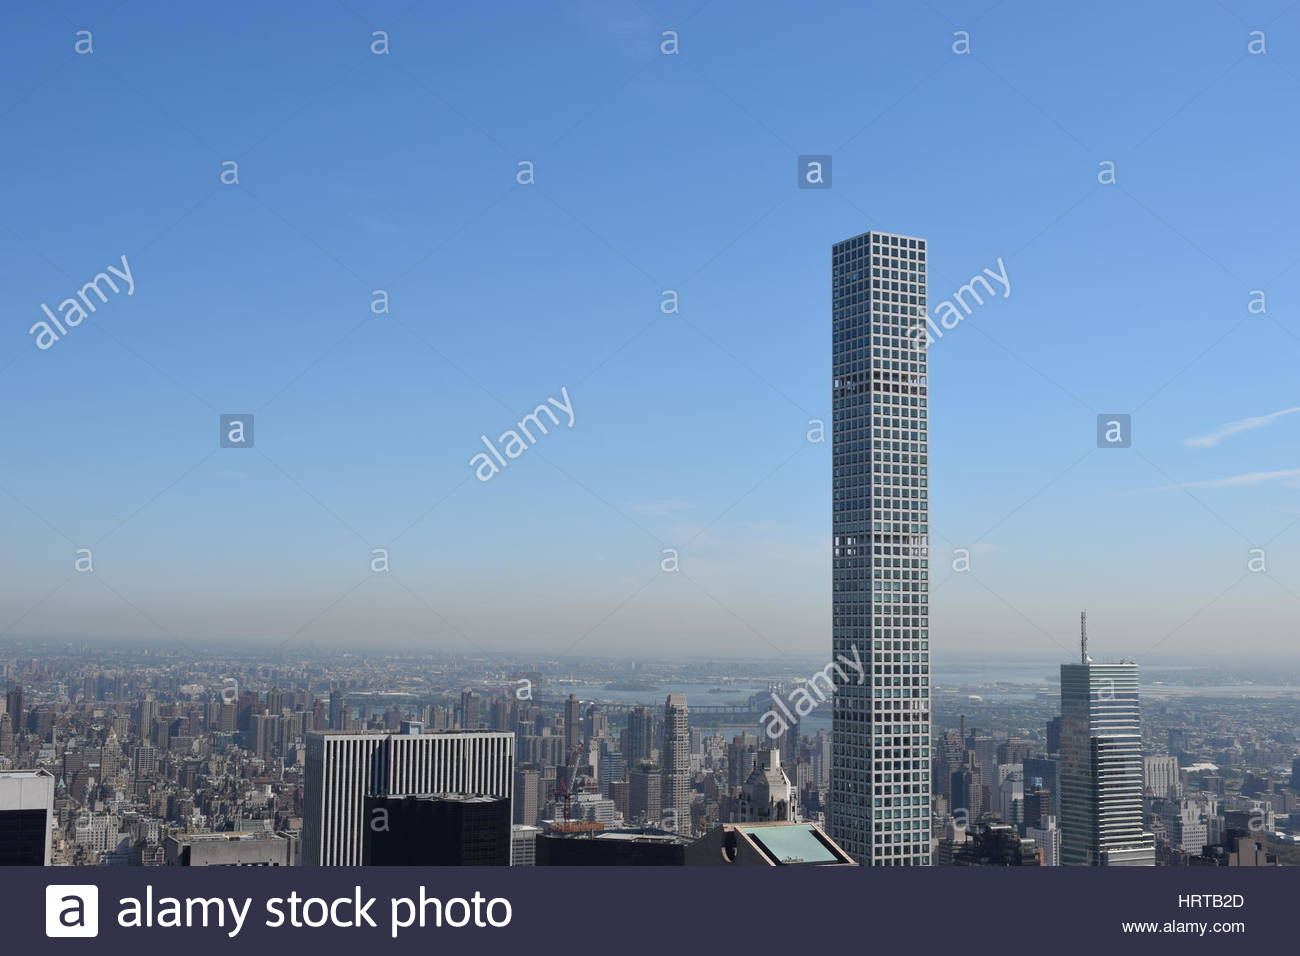 Tallest Residential Building Nyc 432 Park Avenue The Tallest Residential Building In The